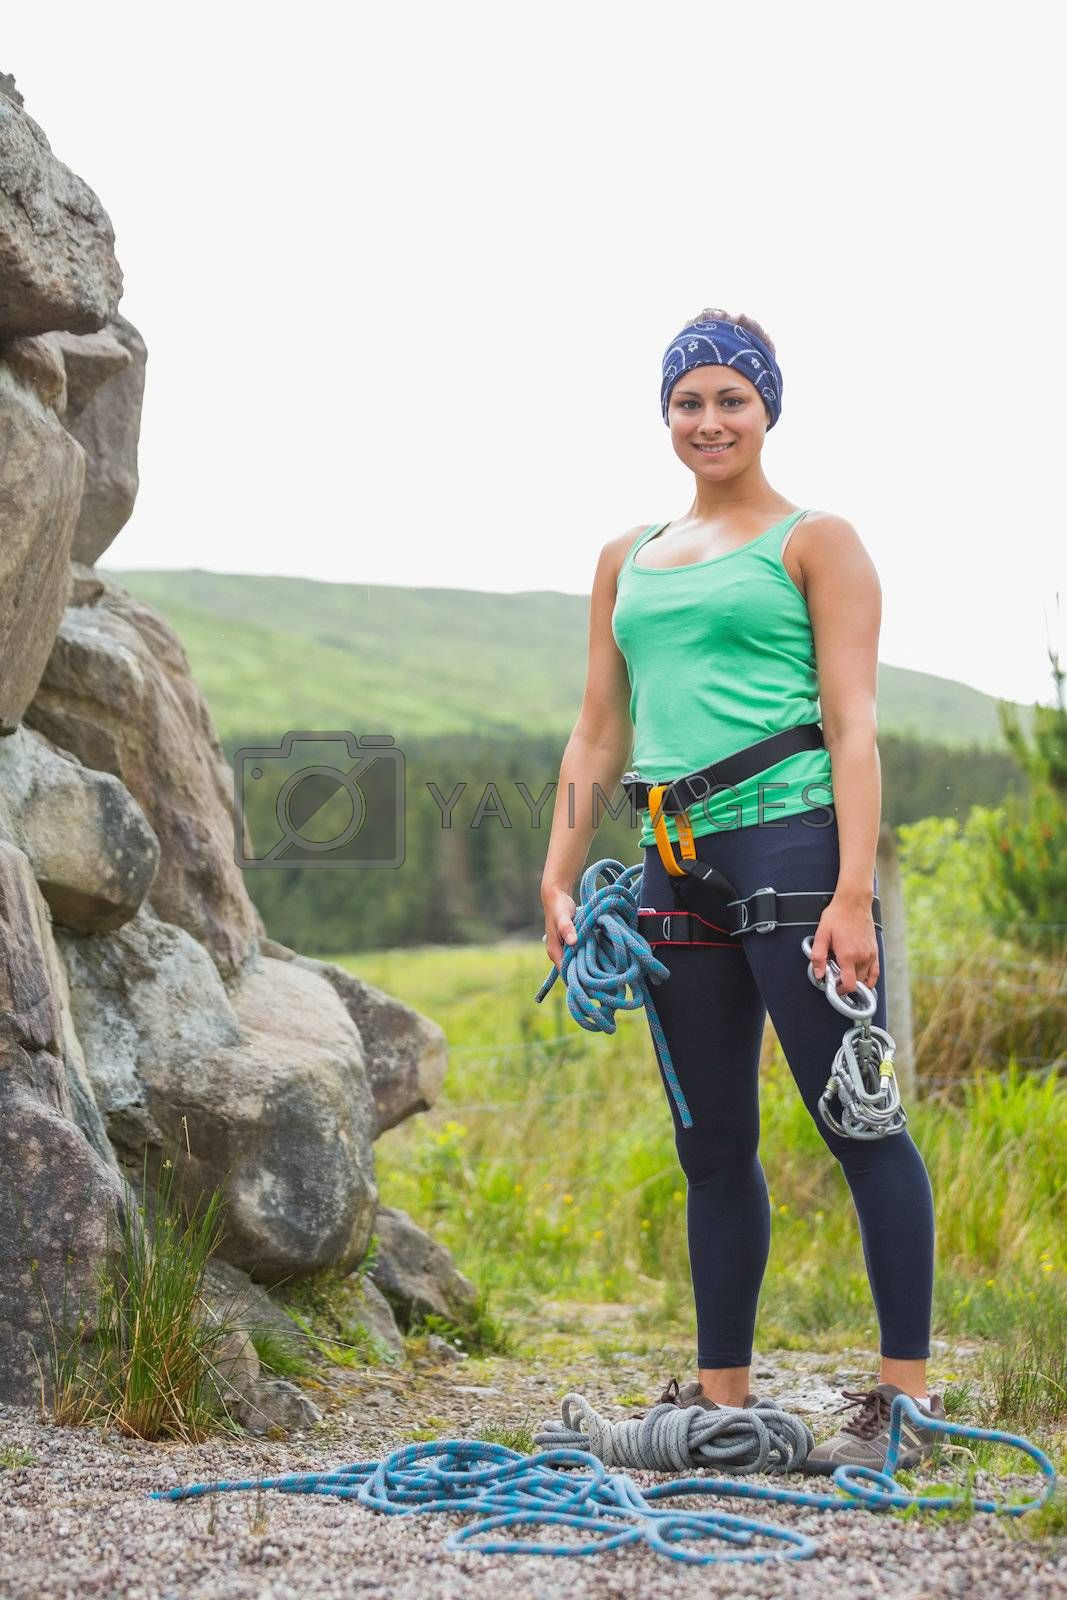 Attractive rock climber smiling at camera by Wavebreakmedia